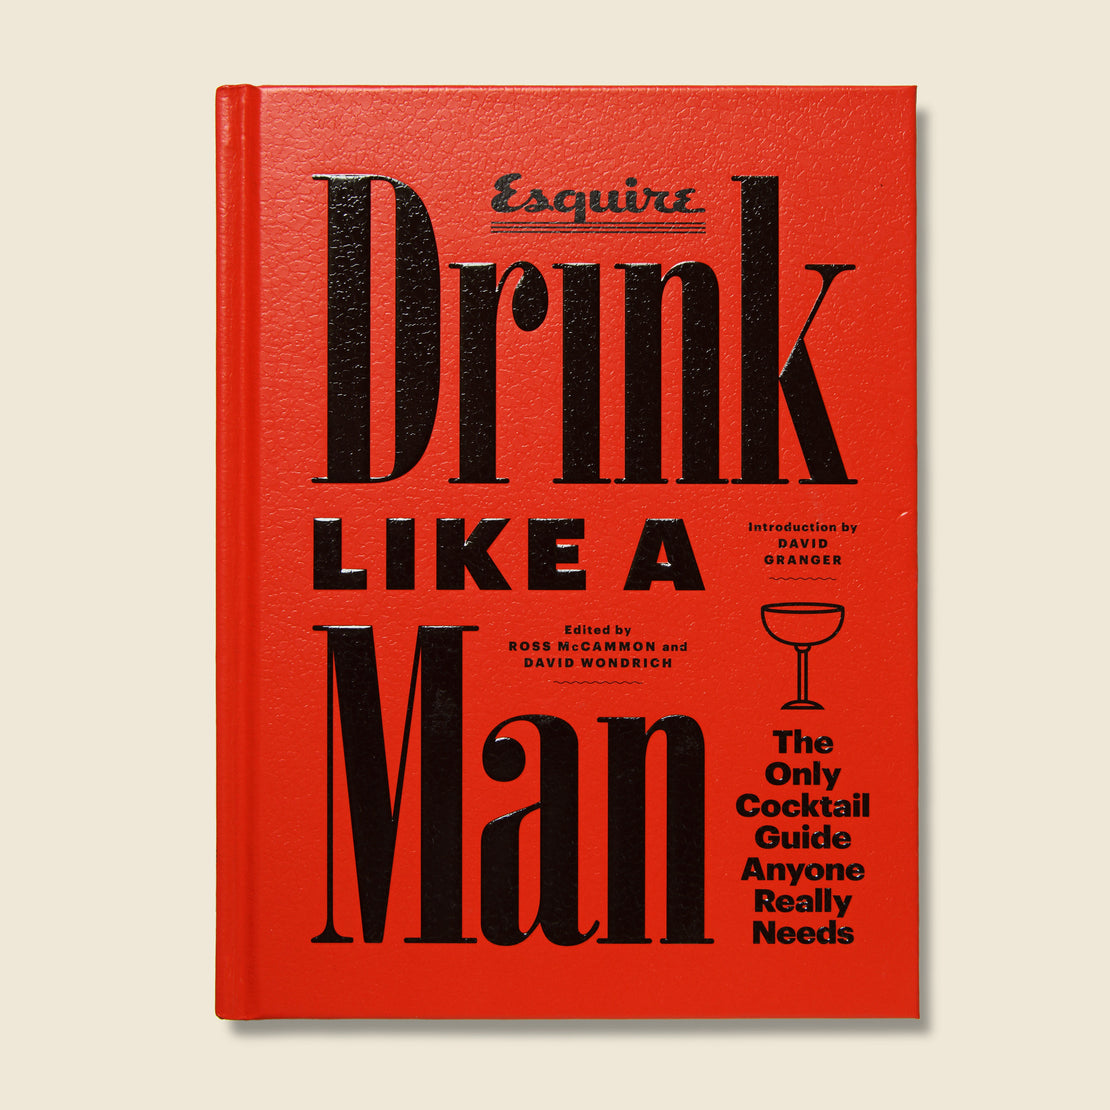 Bookstore Drink Like A Man - Esquire